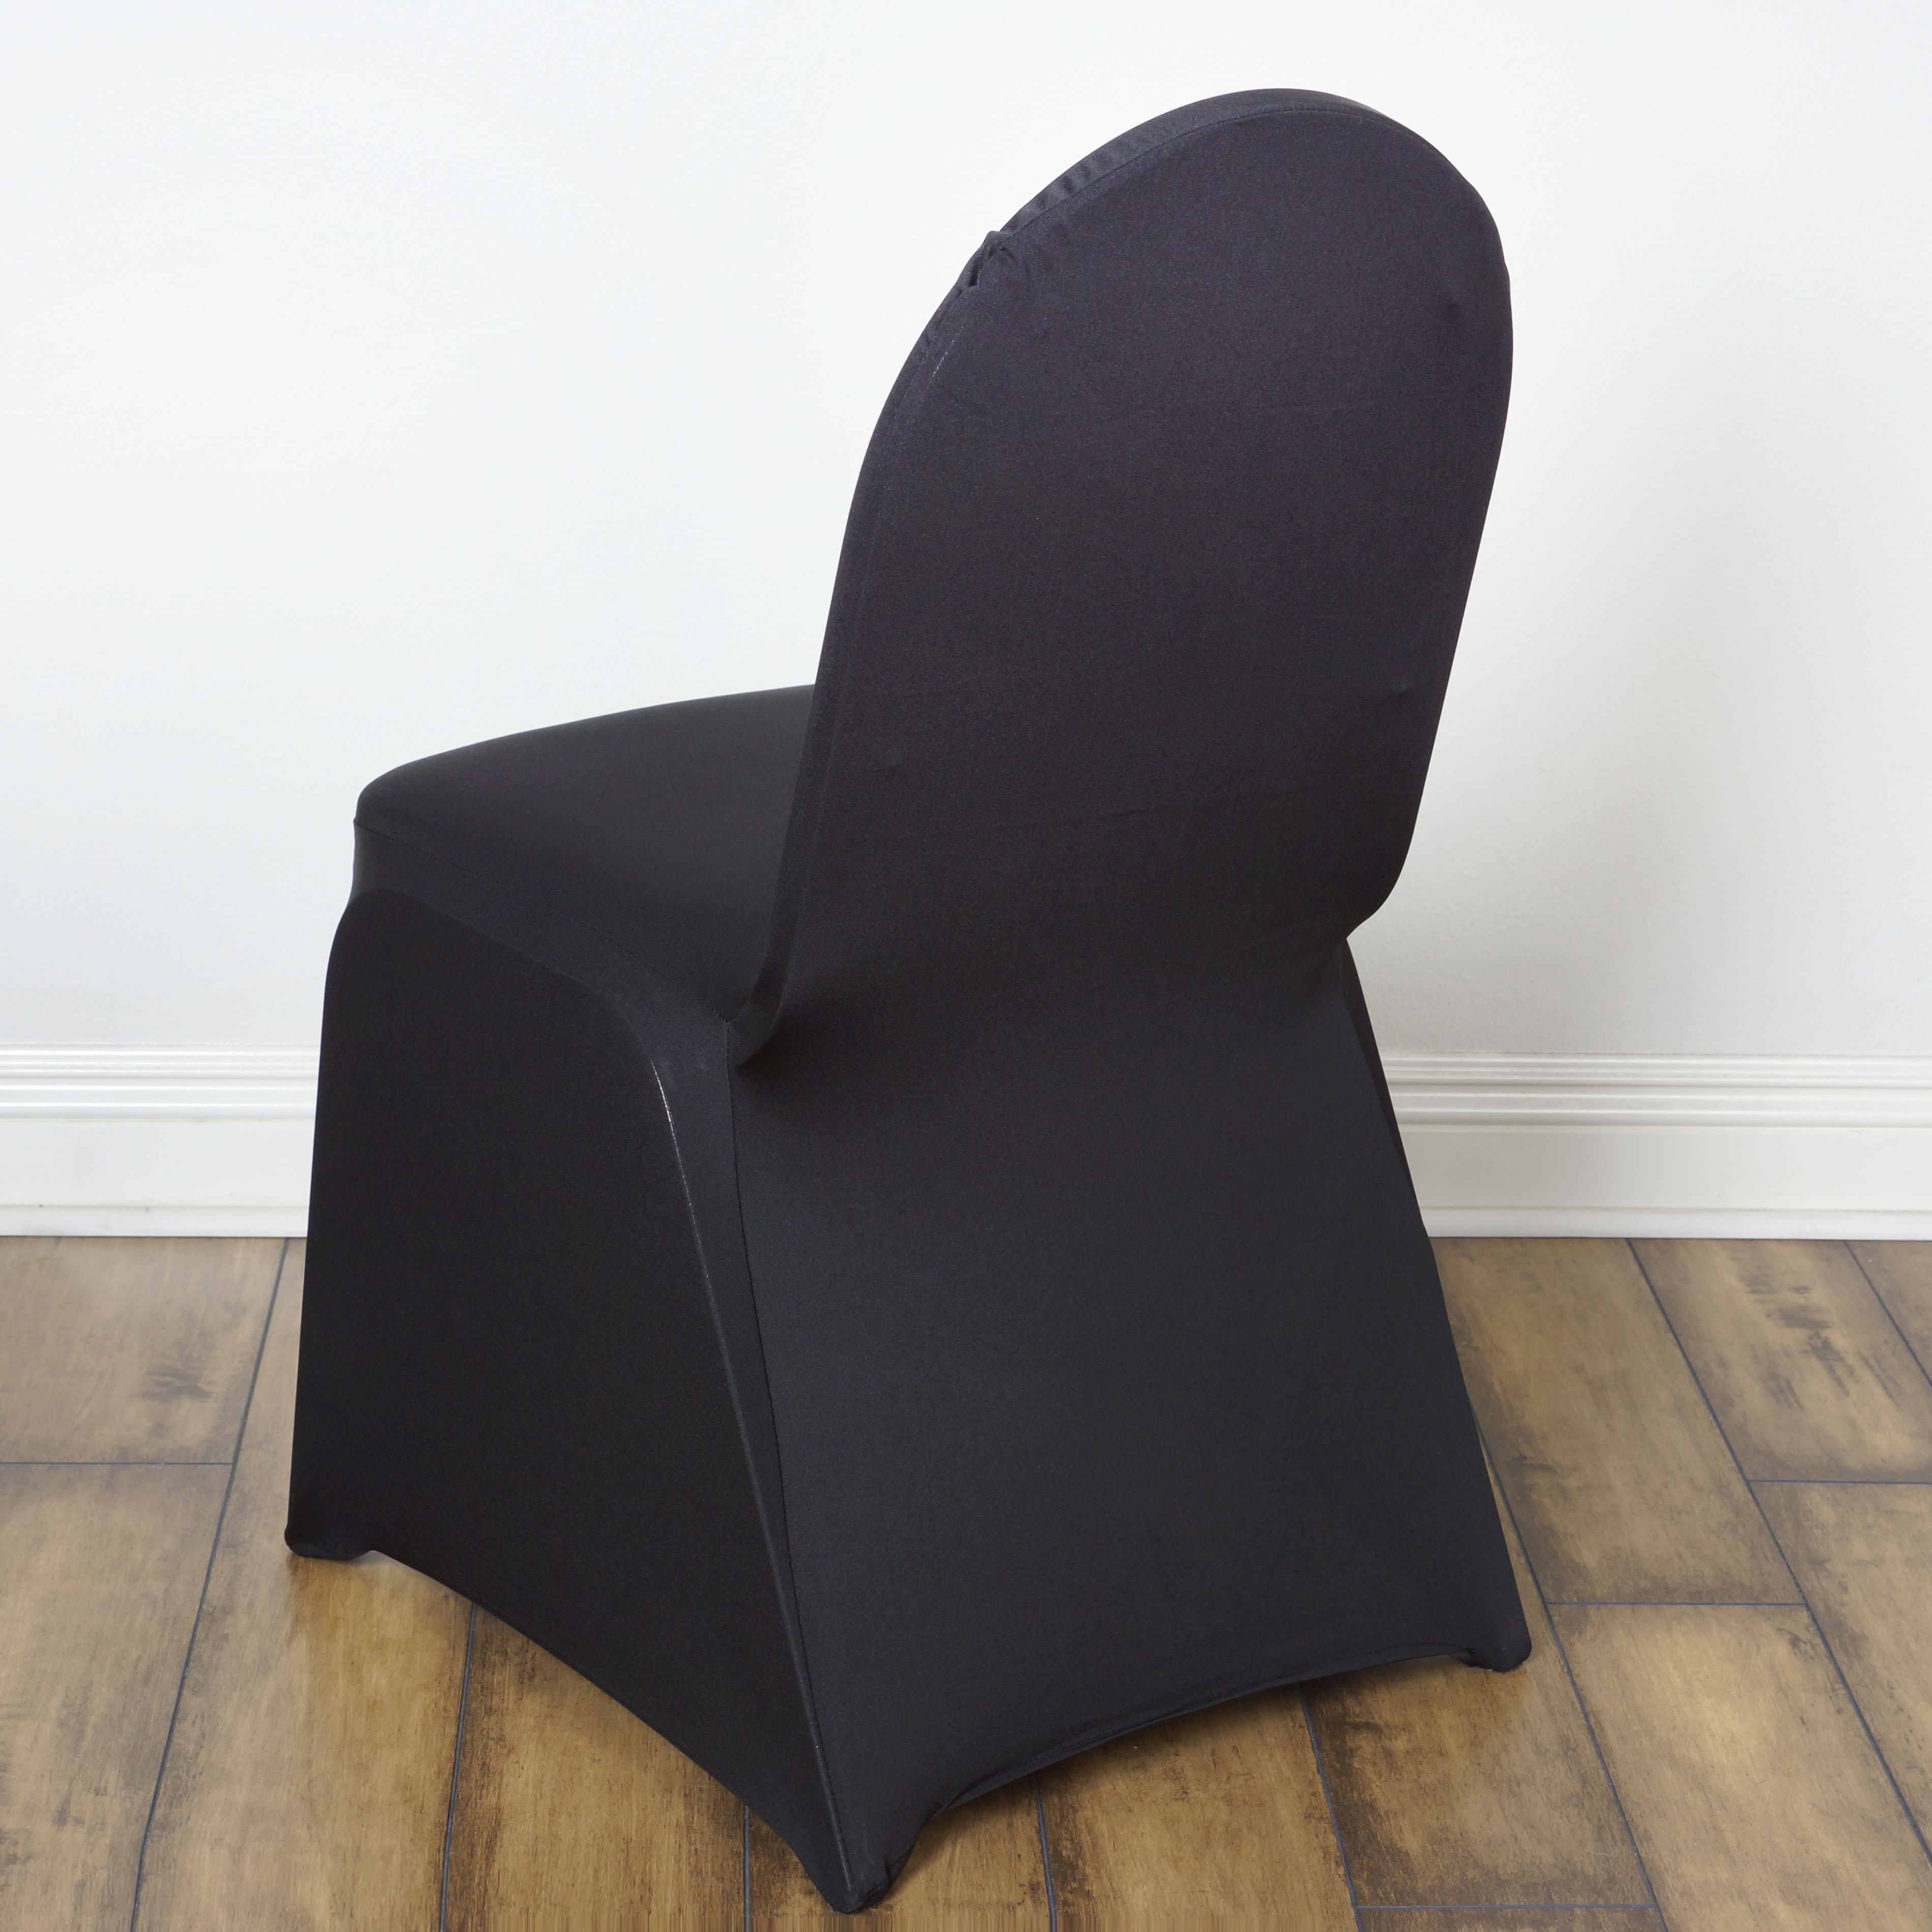 spandex chair covers canada christopher knight home leather recliner club wedding black balsacircle stretchable banquet slipcovers for party reception decorations